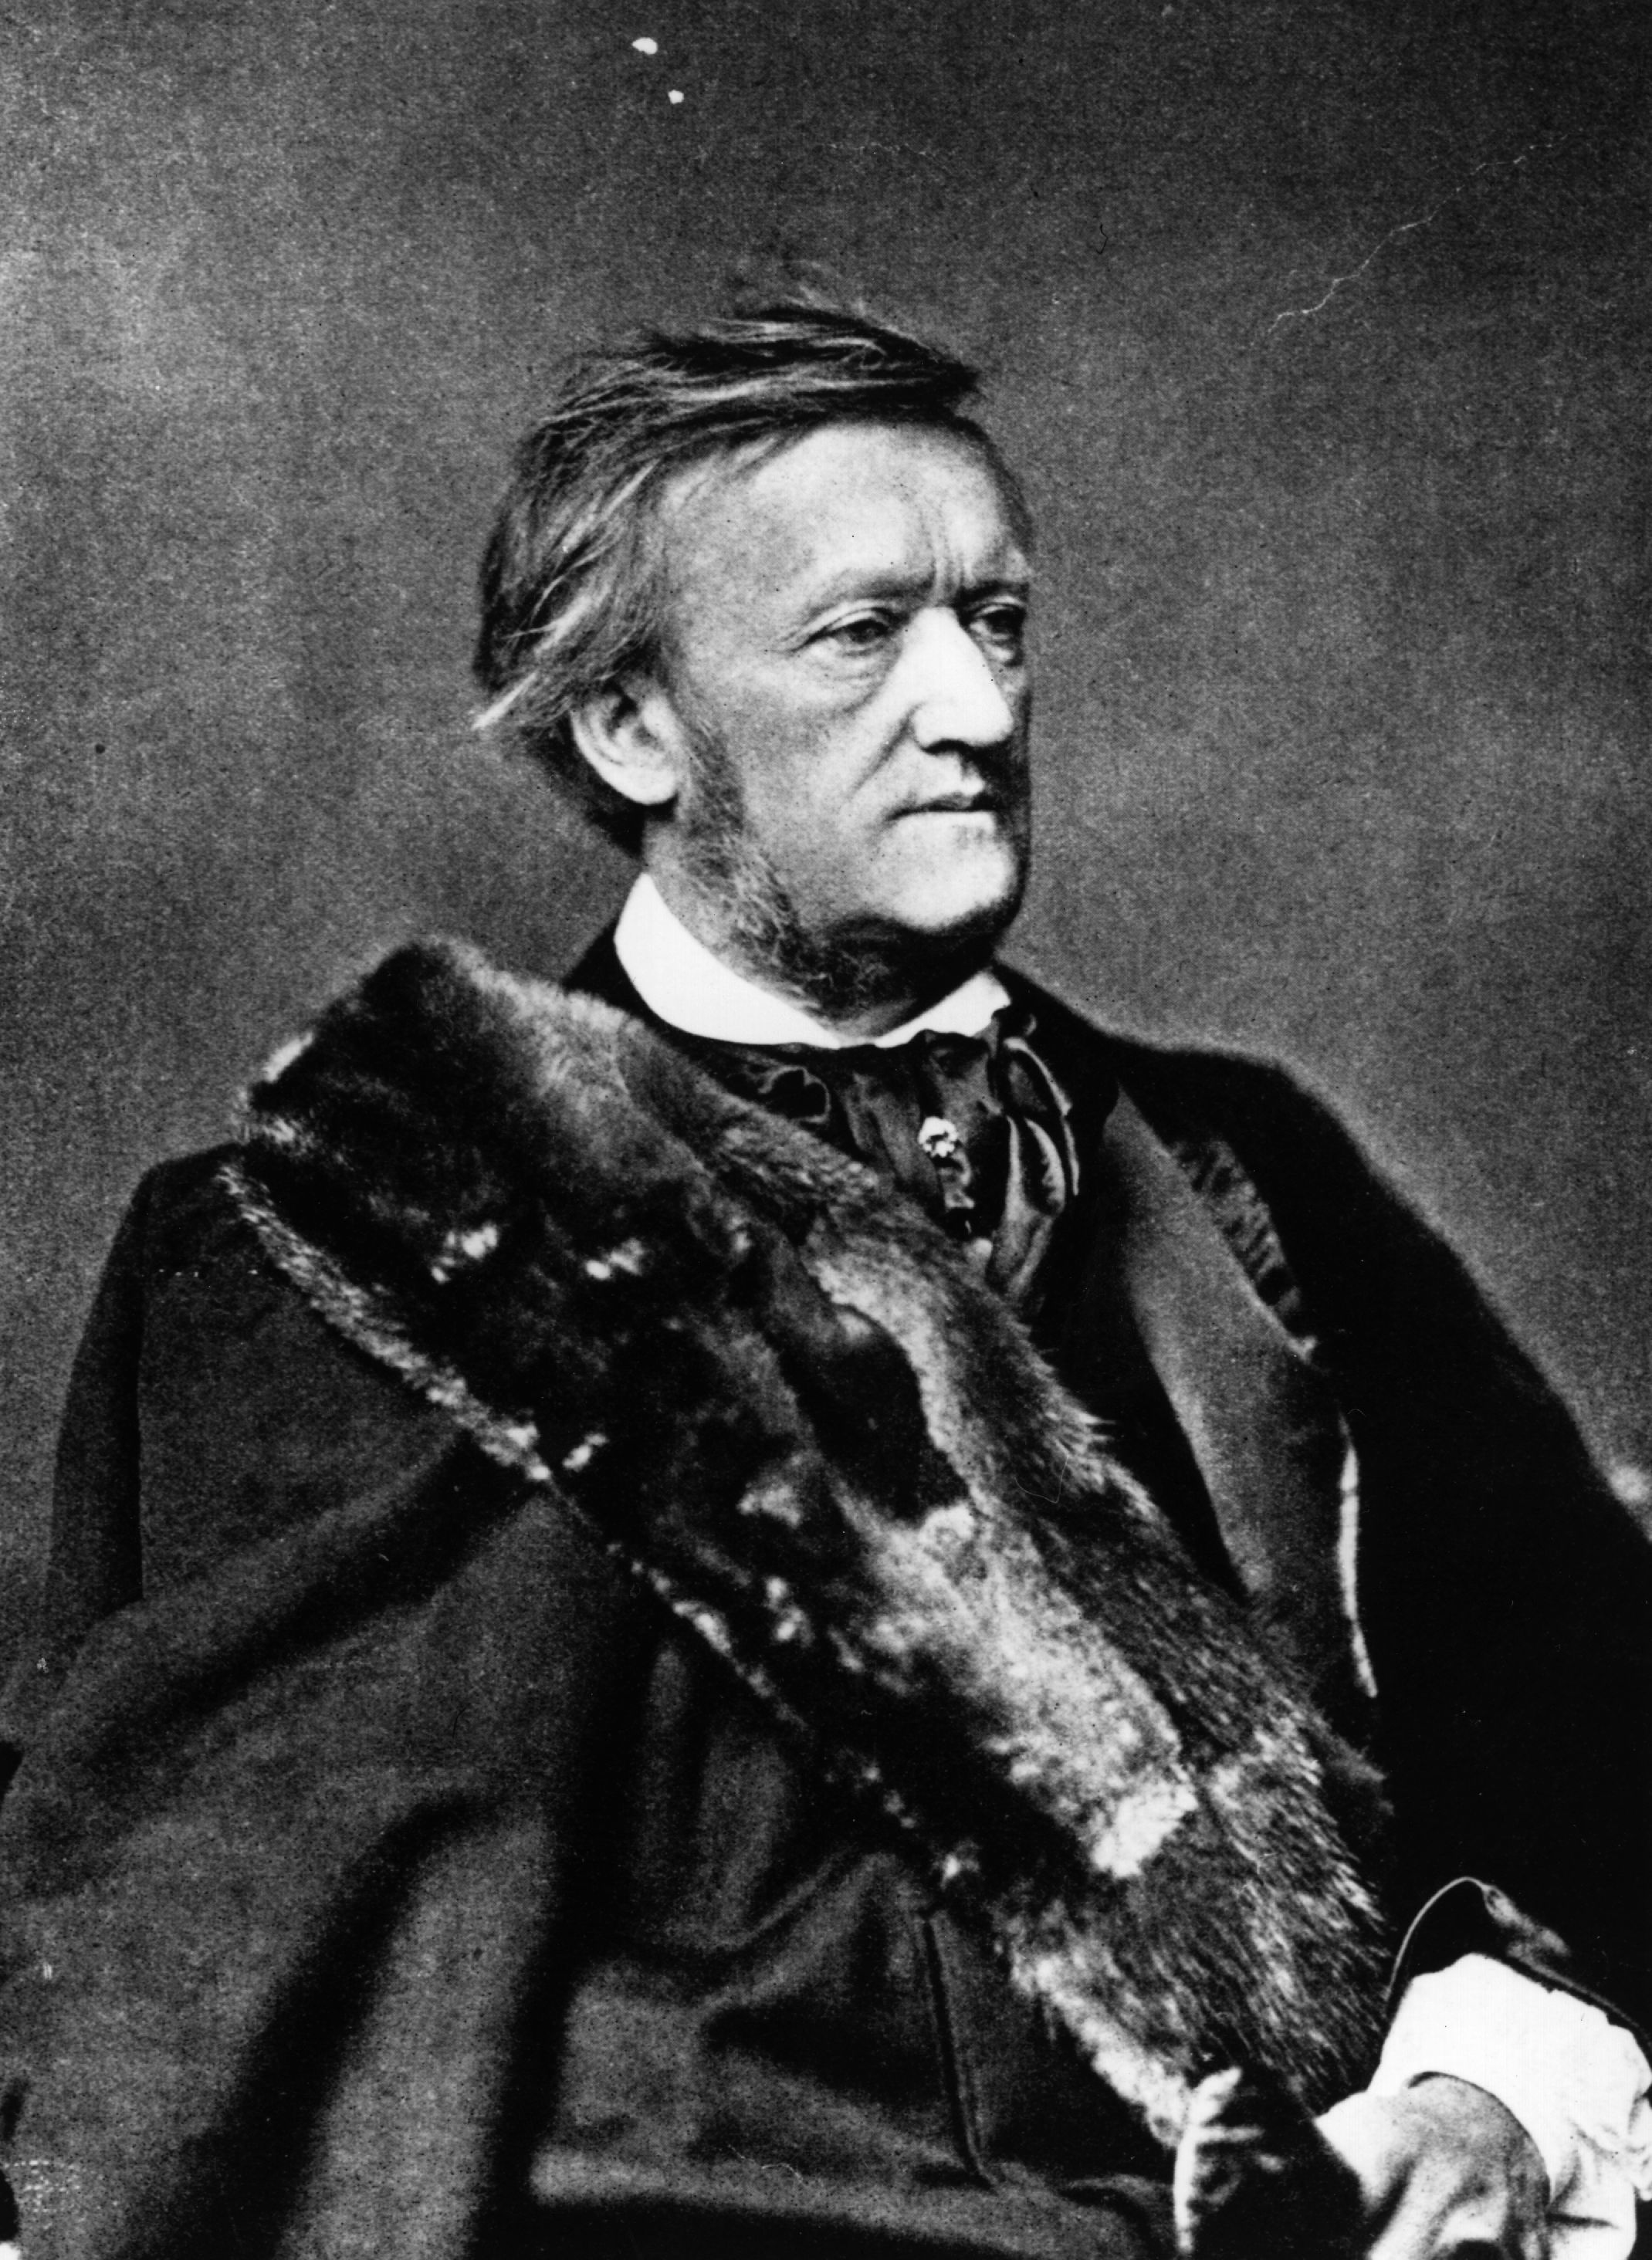 "This is not a new recruit for the ""Night's Watch"" on Game of Thrones, but Richard Wagner, who, popularized the term ""Gesamtkunstwerk."""